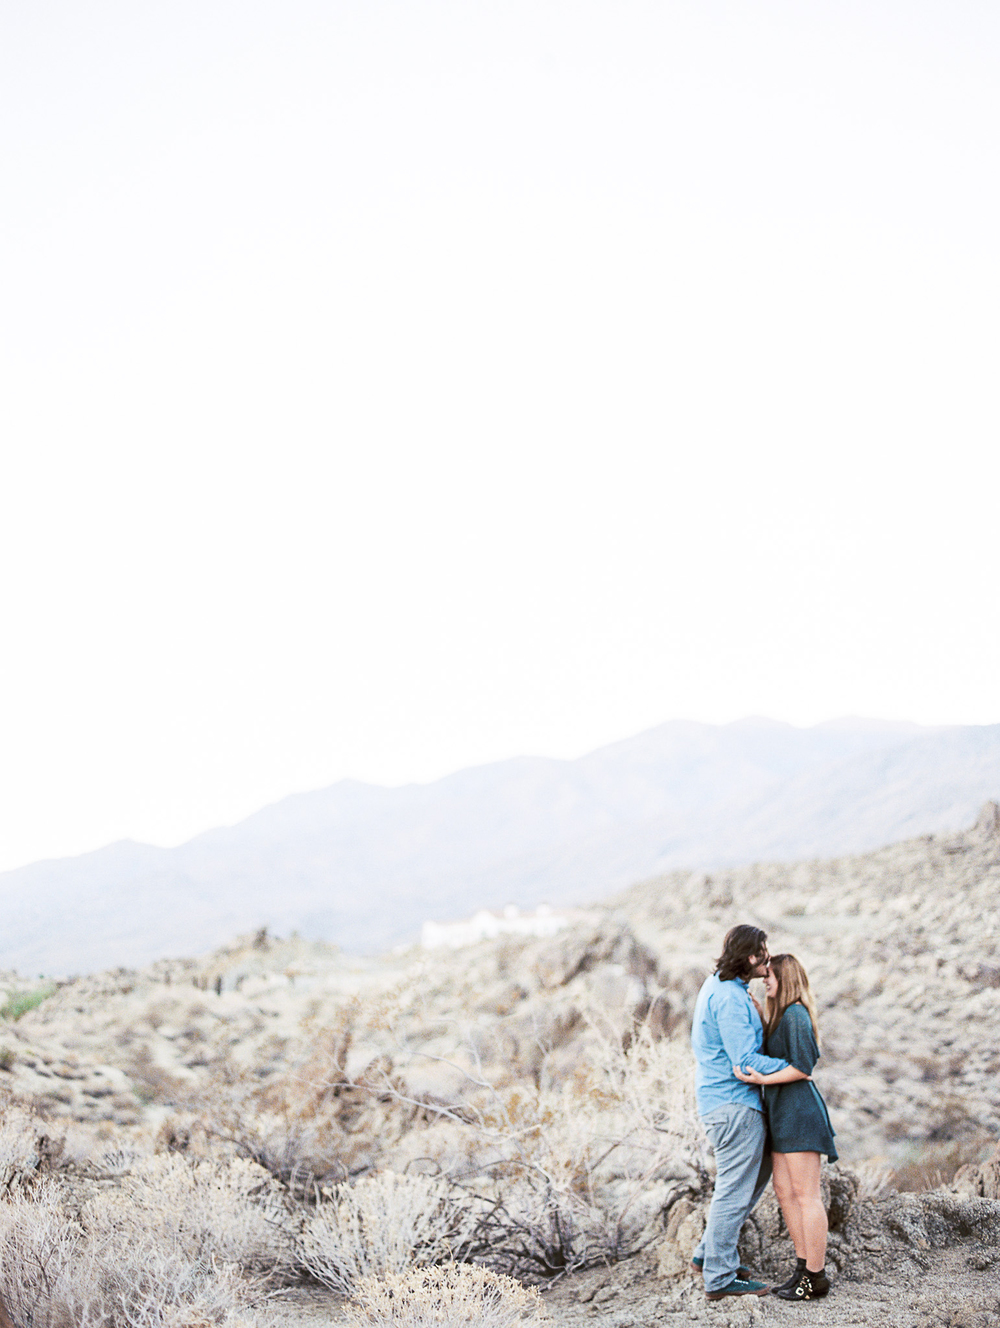 alyssa-nikole-photography-palm springs-engagement-tay-steve-11.jpg